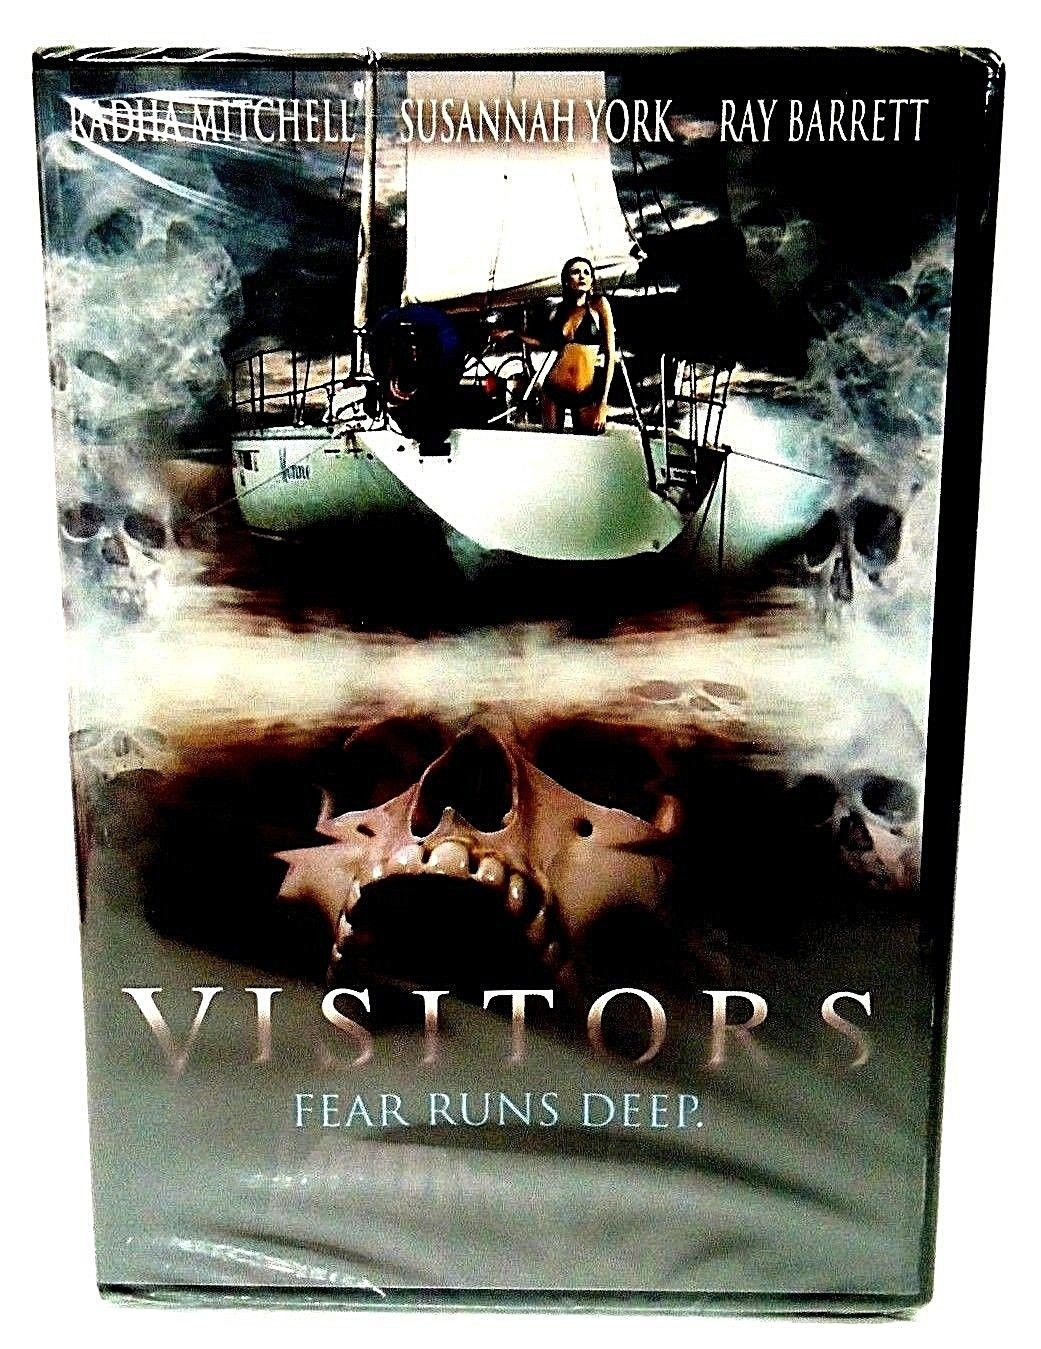 VISITORS - DVD - RADHA MITCHELL - RAY BARRETT - NEW - HORROR - PIRATE - MOVIE